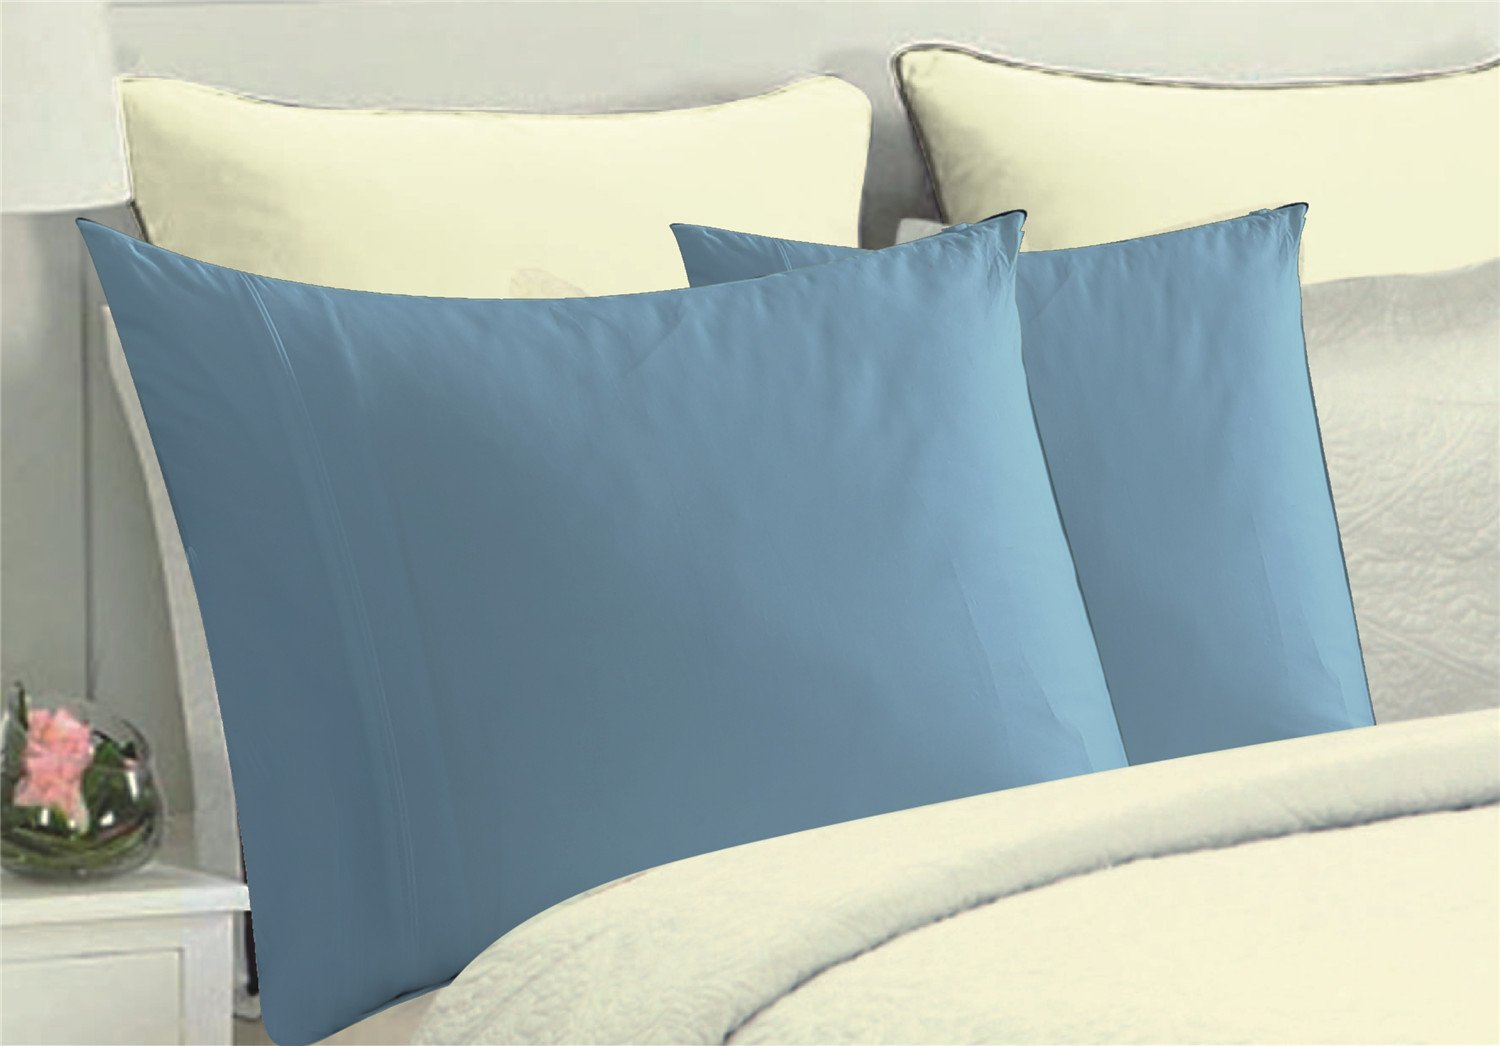 MarCielo Pillow Cases, 2 Piece Pillow Covers Standard Size Queen Size, 100% Brushed Microfiber Pillowcase Protector, Ultra Soft Wrinkle Free Stain Resistant, Light Blue, Queen